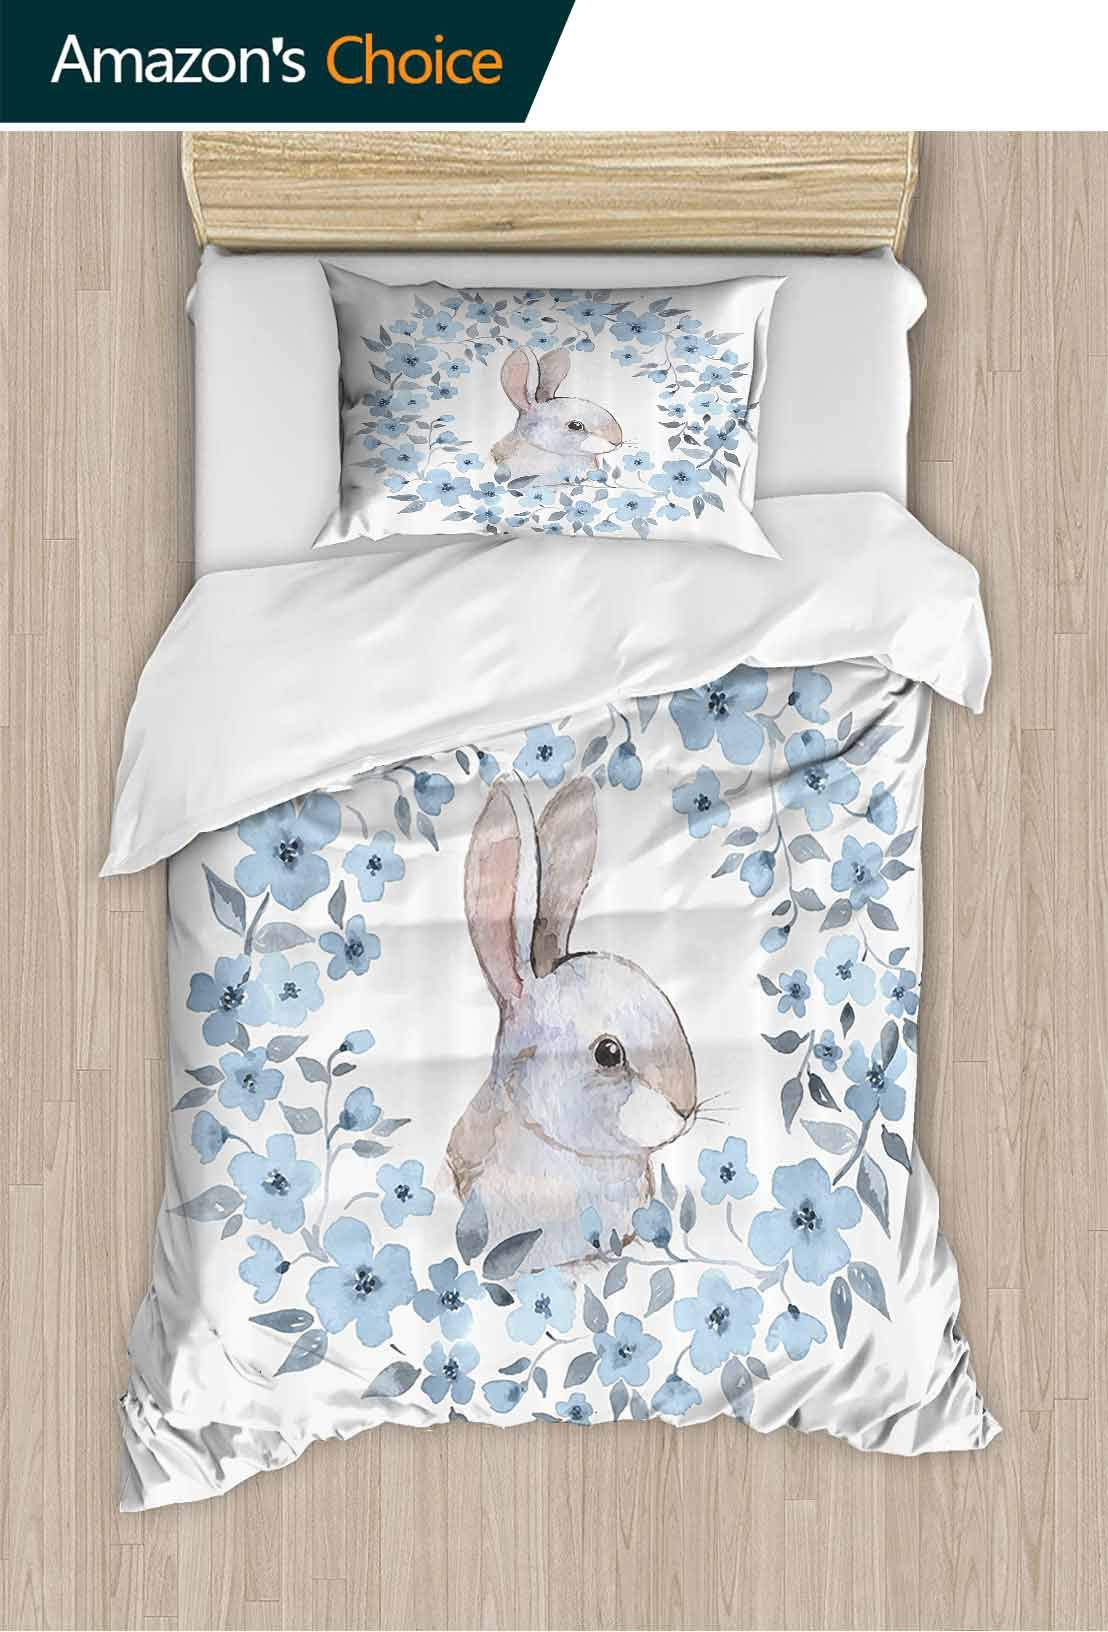 PRUNUSHOME Ultra-Soft Polyester Bed Sheets Decor Bunny Rabbit Portrait in Floral Wreath Country Hypoallergenic California King